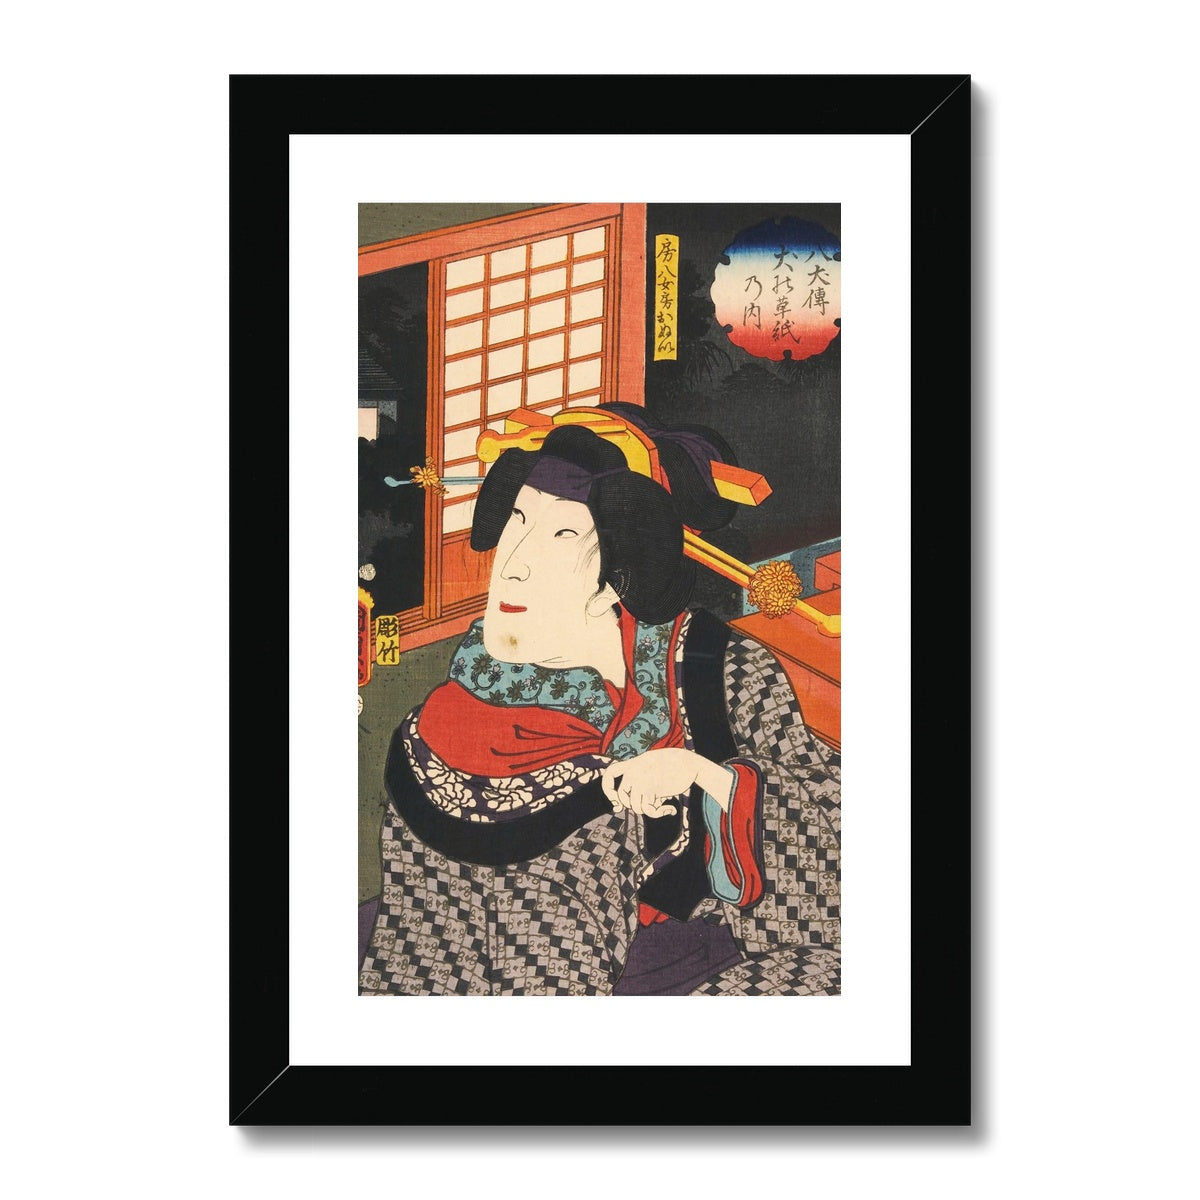 Onoe Kikujiro II as Fusahachi's Wife Nui (1852) - Framed & Mounted Print